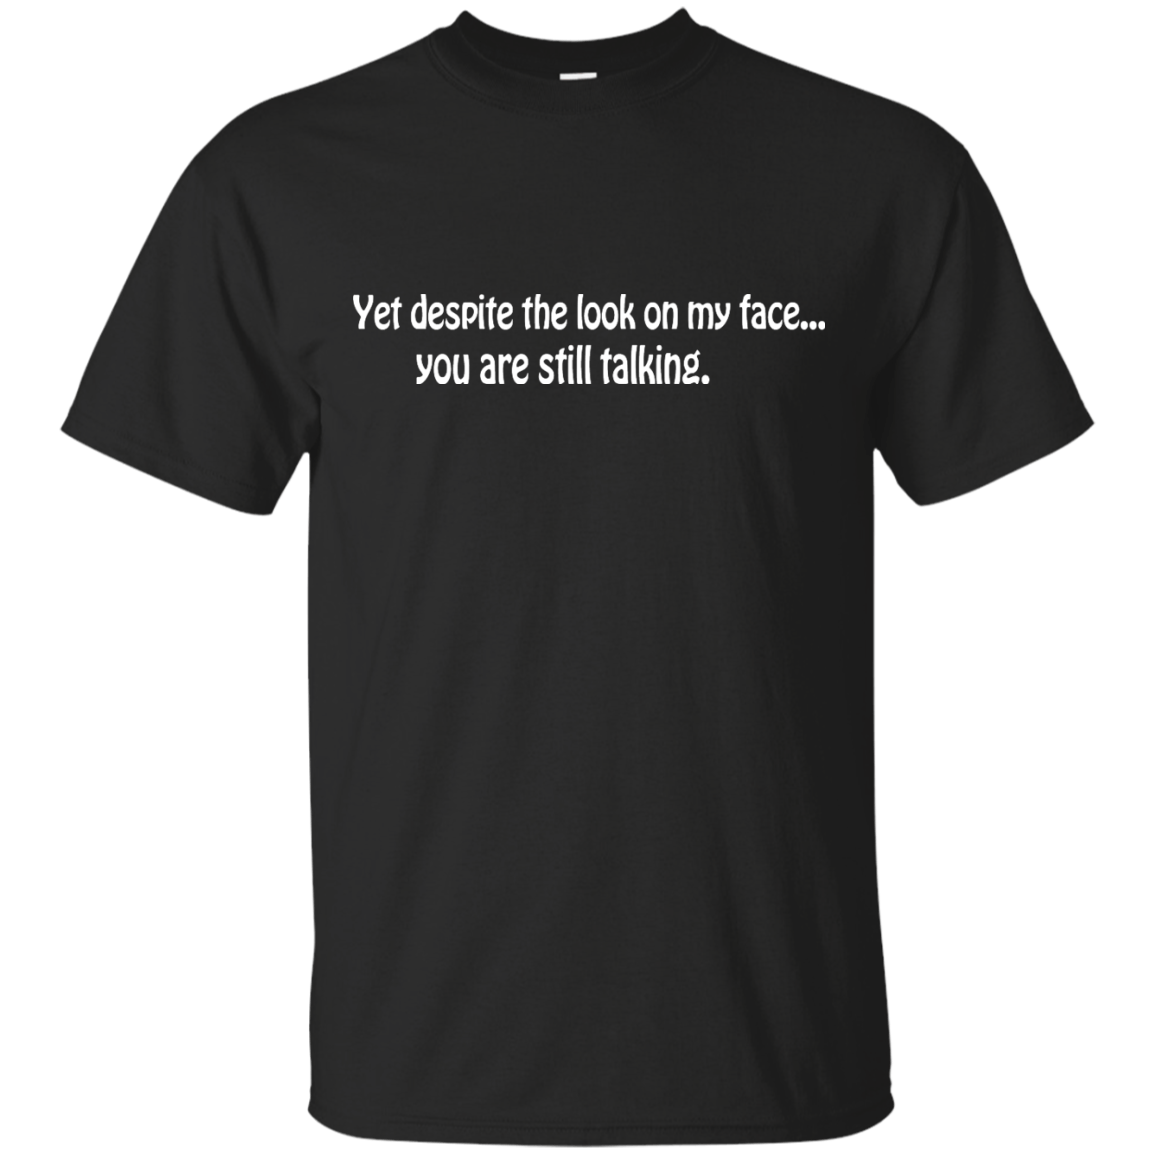 Yet despite the look on my face... you are still talking shirt